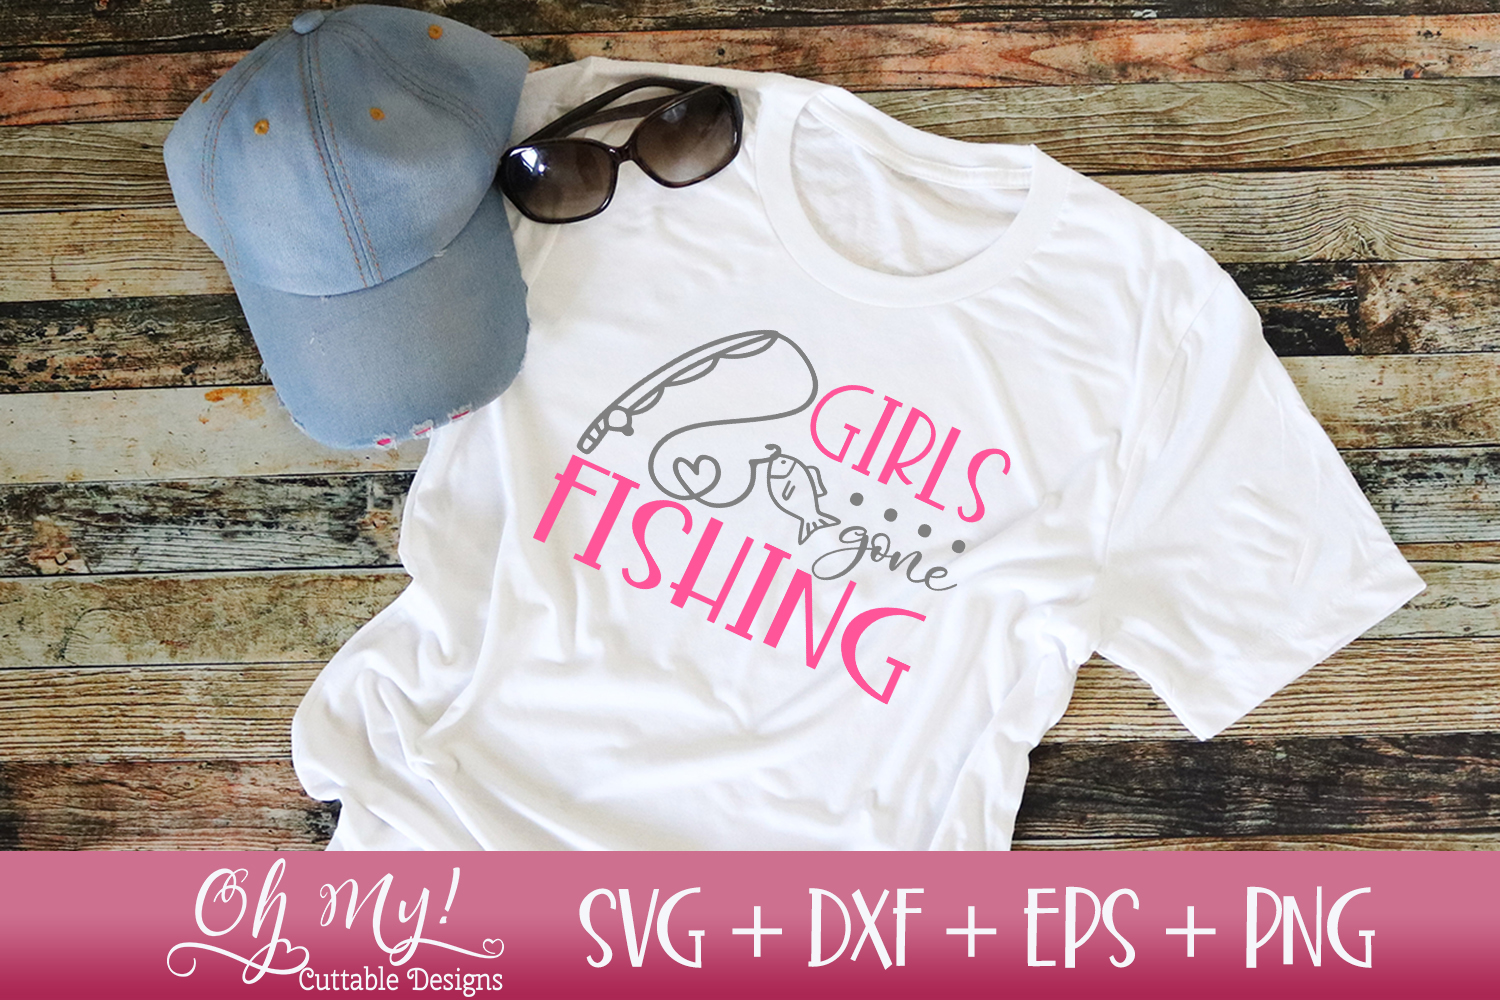 Girls Gone Fishing - SVG DXF EPS PNG Cutting example image 2